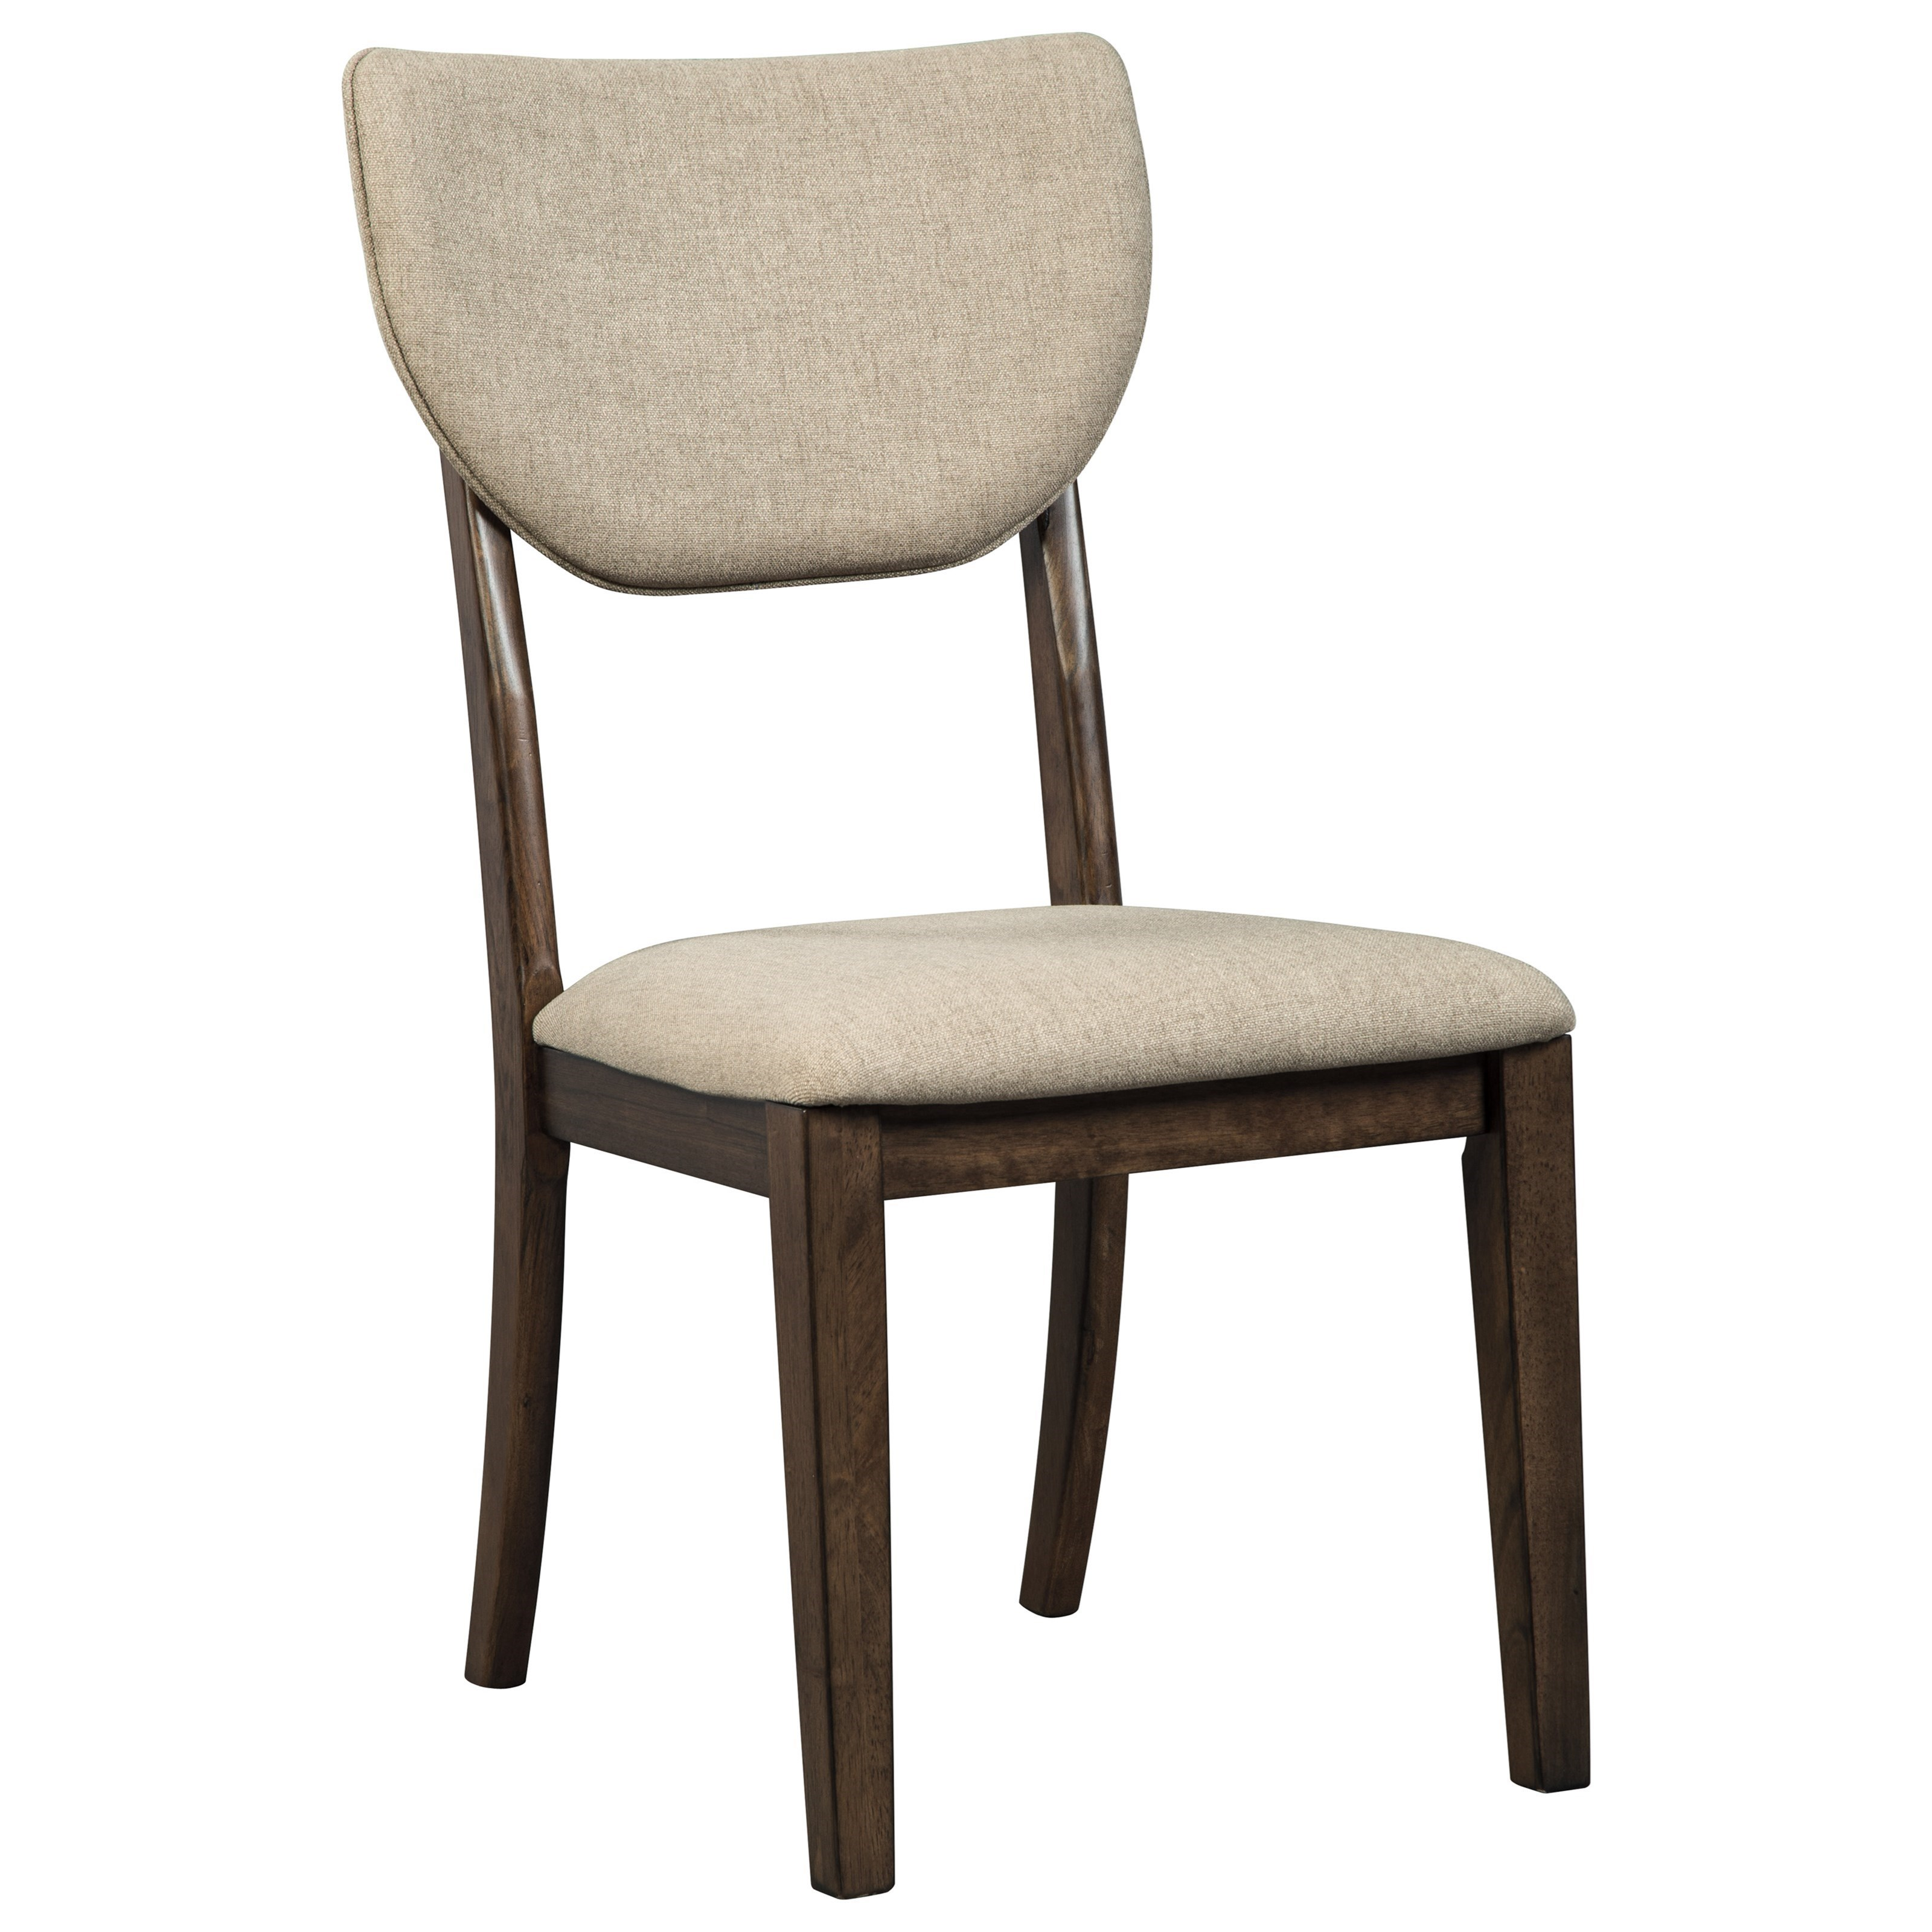 Signature Design by Ashley Joshton Dining Upholstered Side Chair - Item Number: D517-02